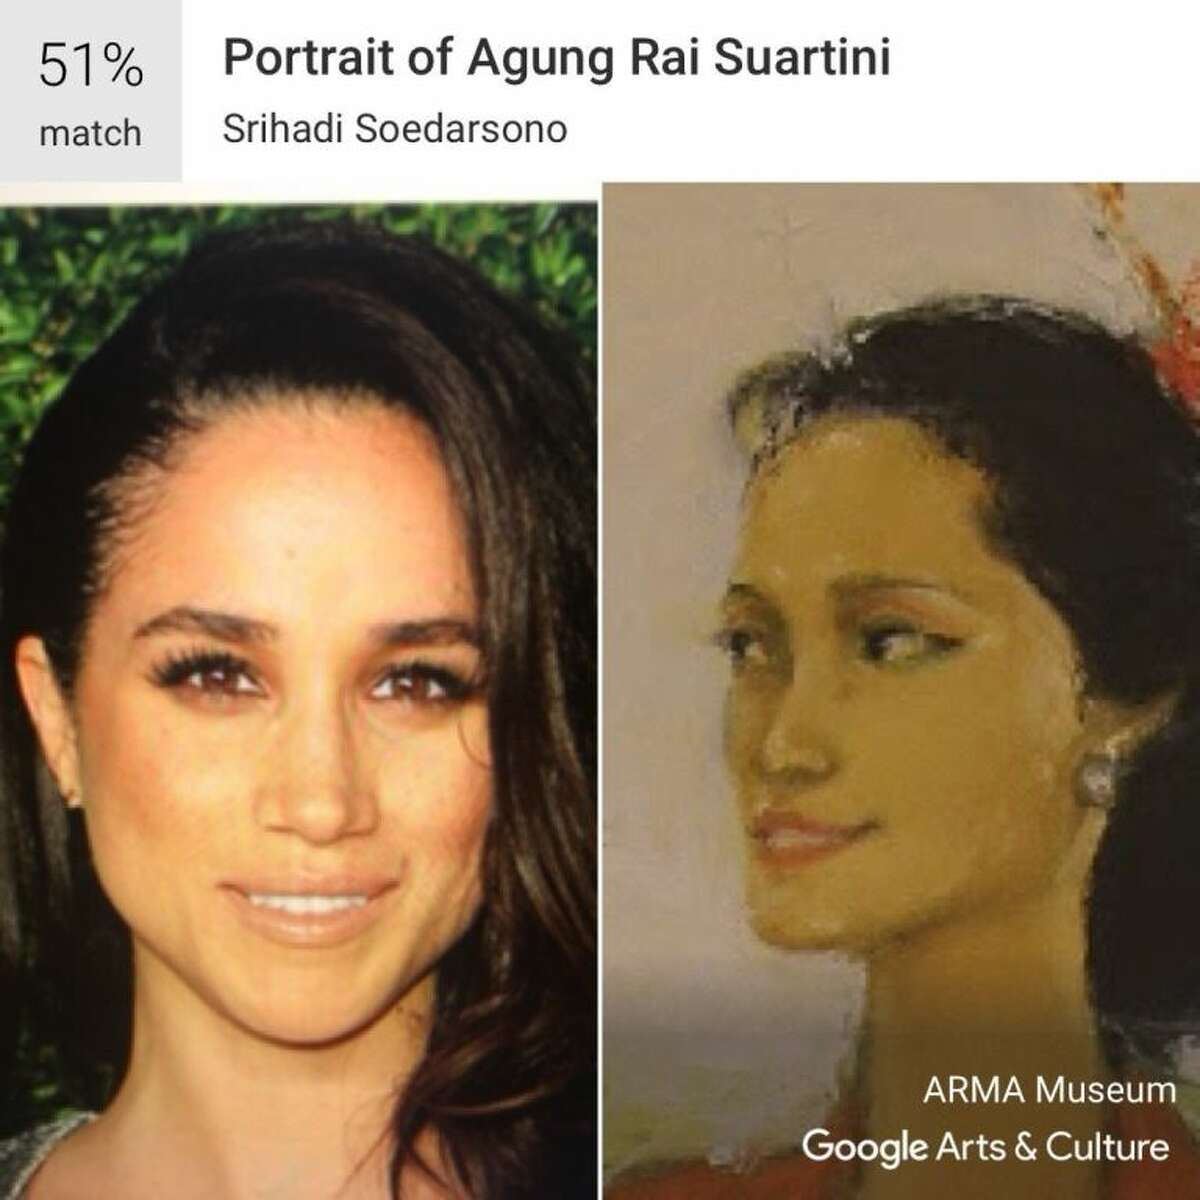 Google's Arts and Culture App compares your selfies to classic works of art and provides the best match, like this image of Meghan Markle to Srihadi Soedarsono's